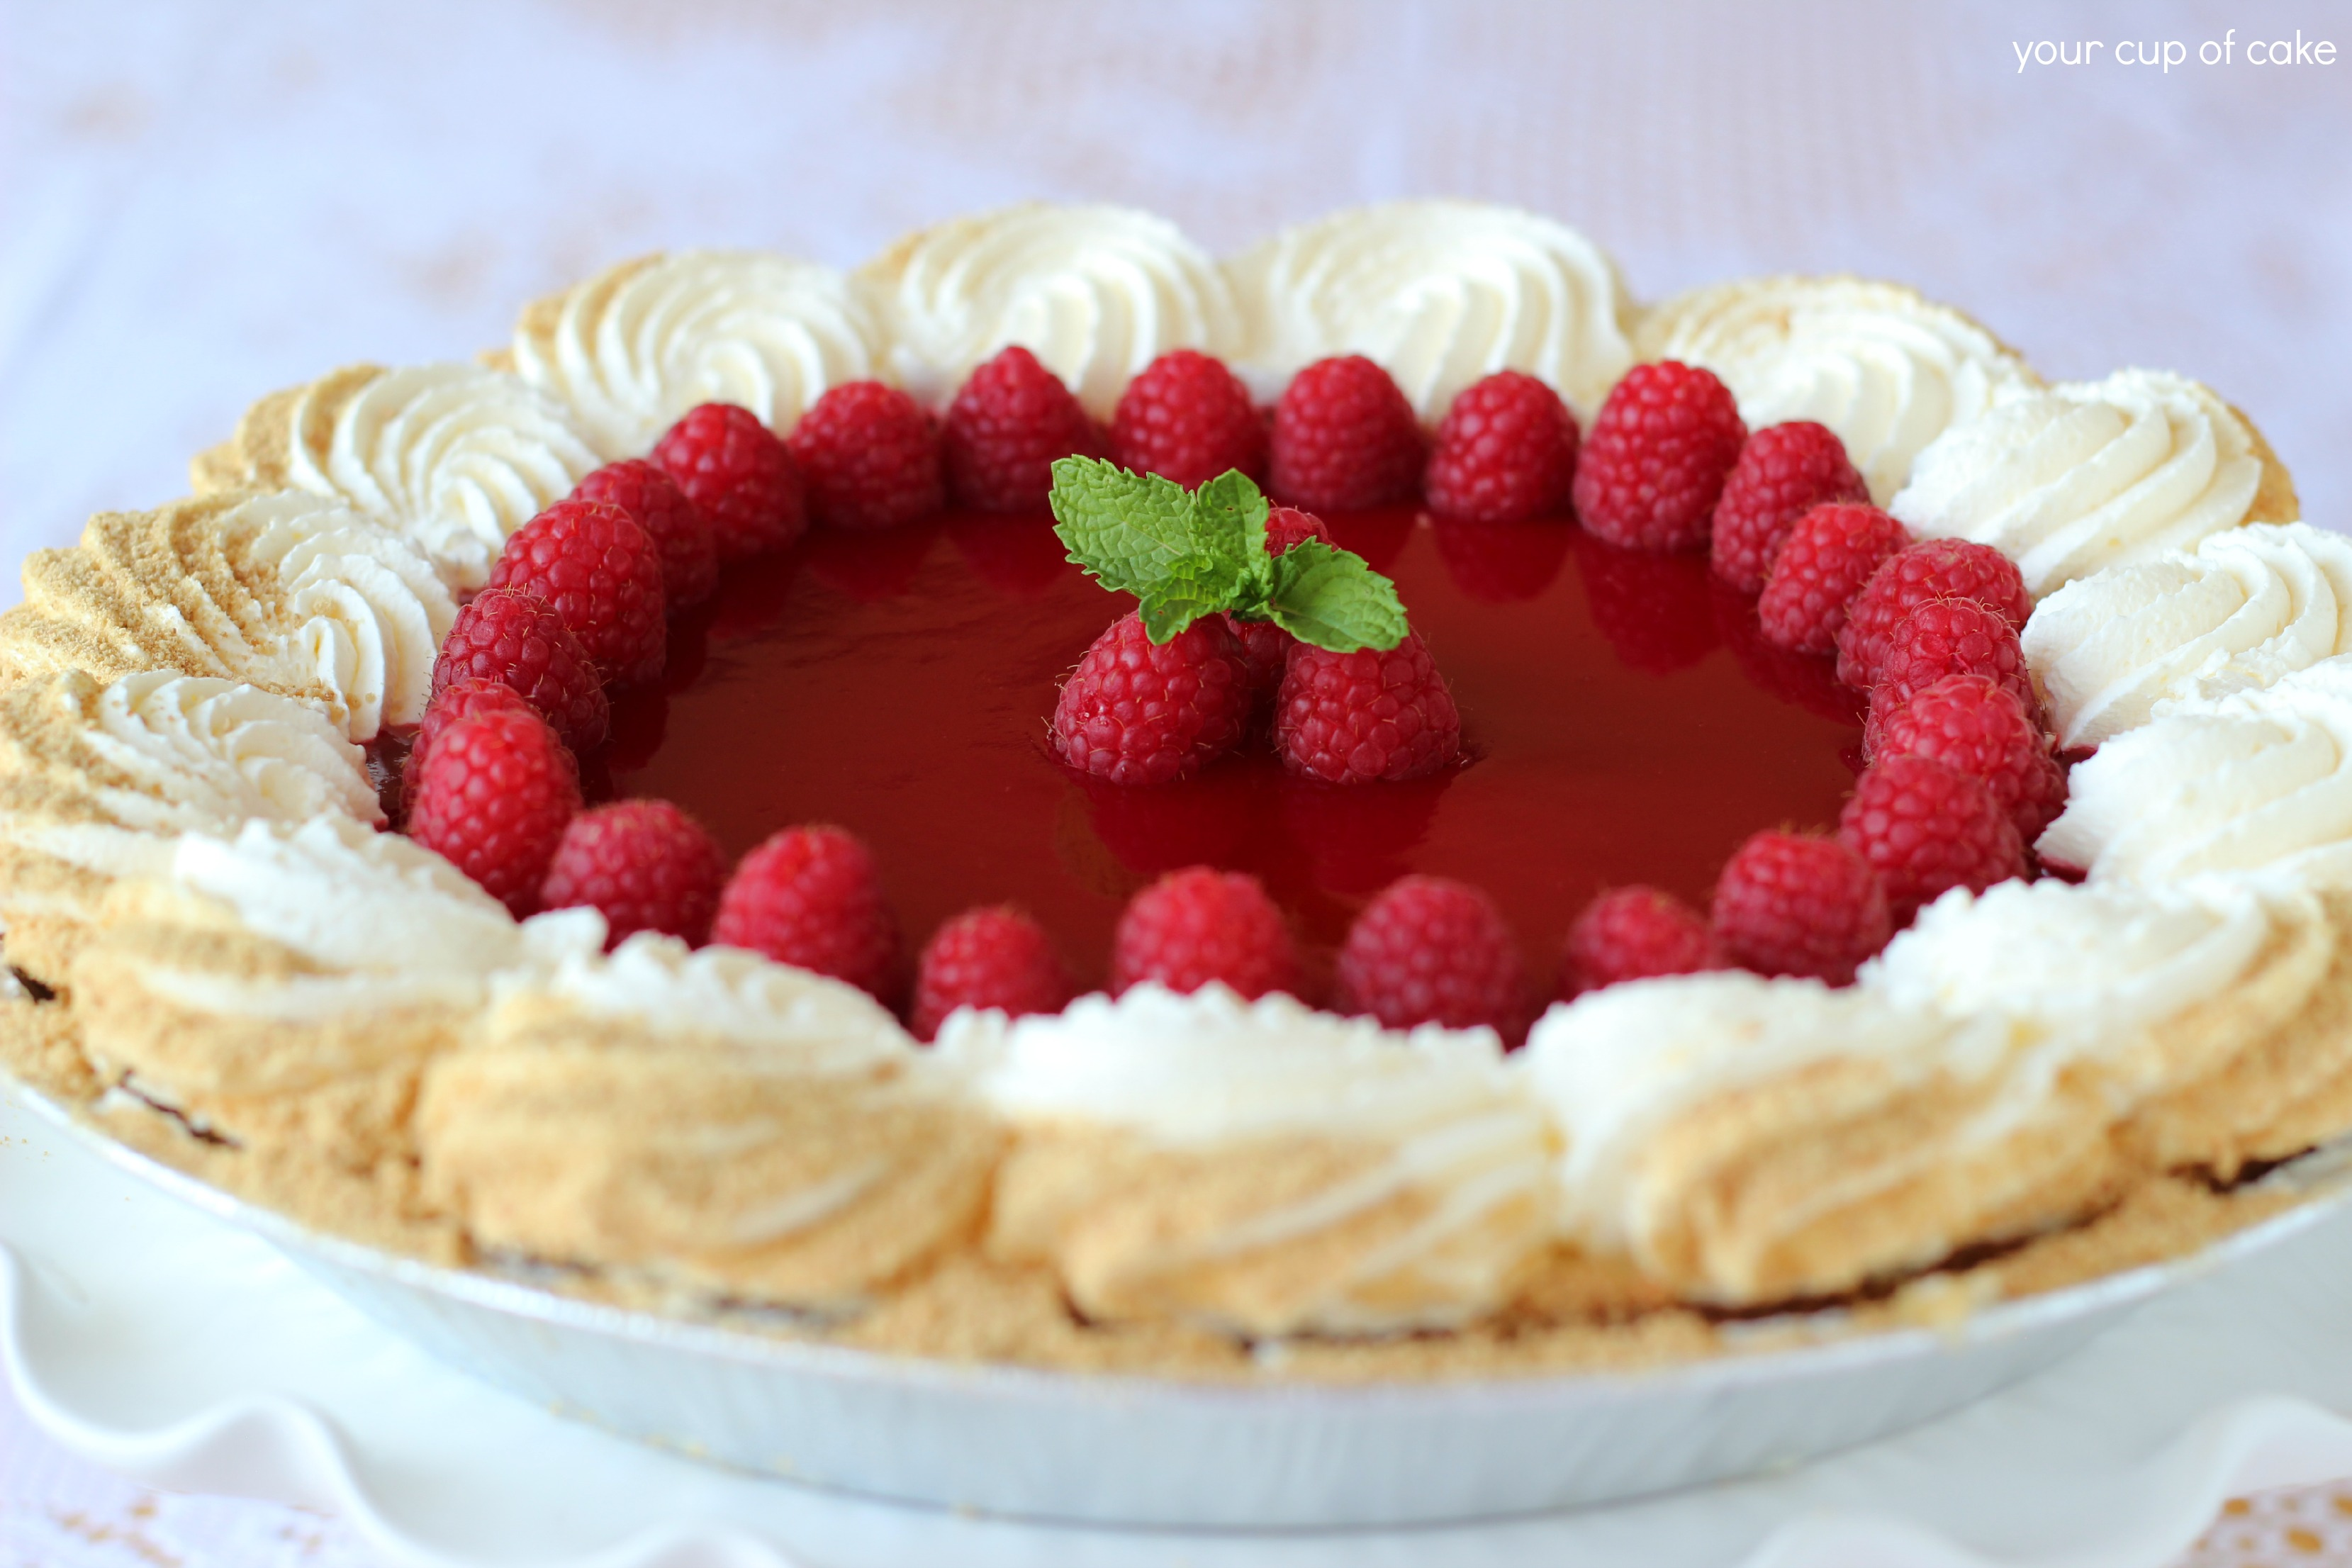 Costco Makeover: Raspberry Key Lime Pie - Your Cup of Cake